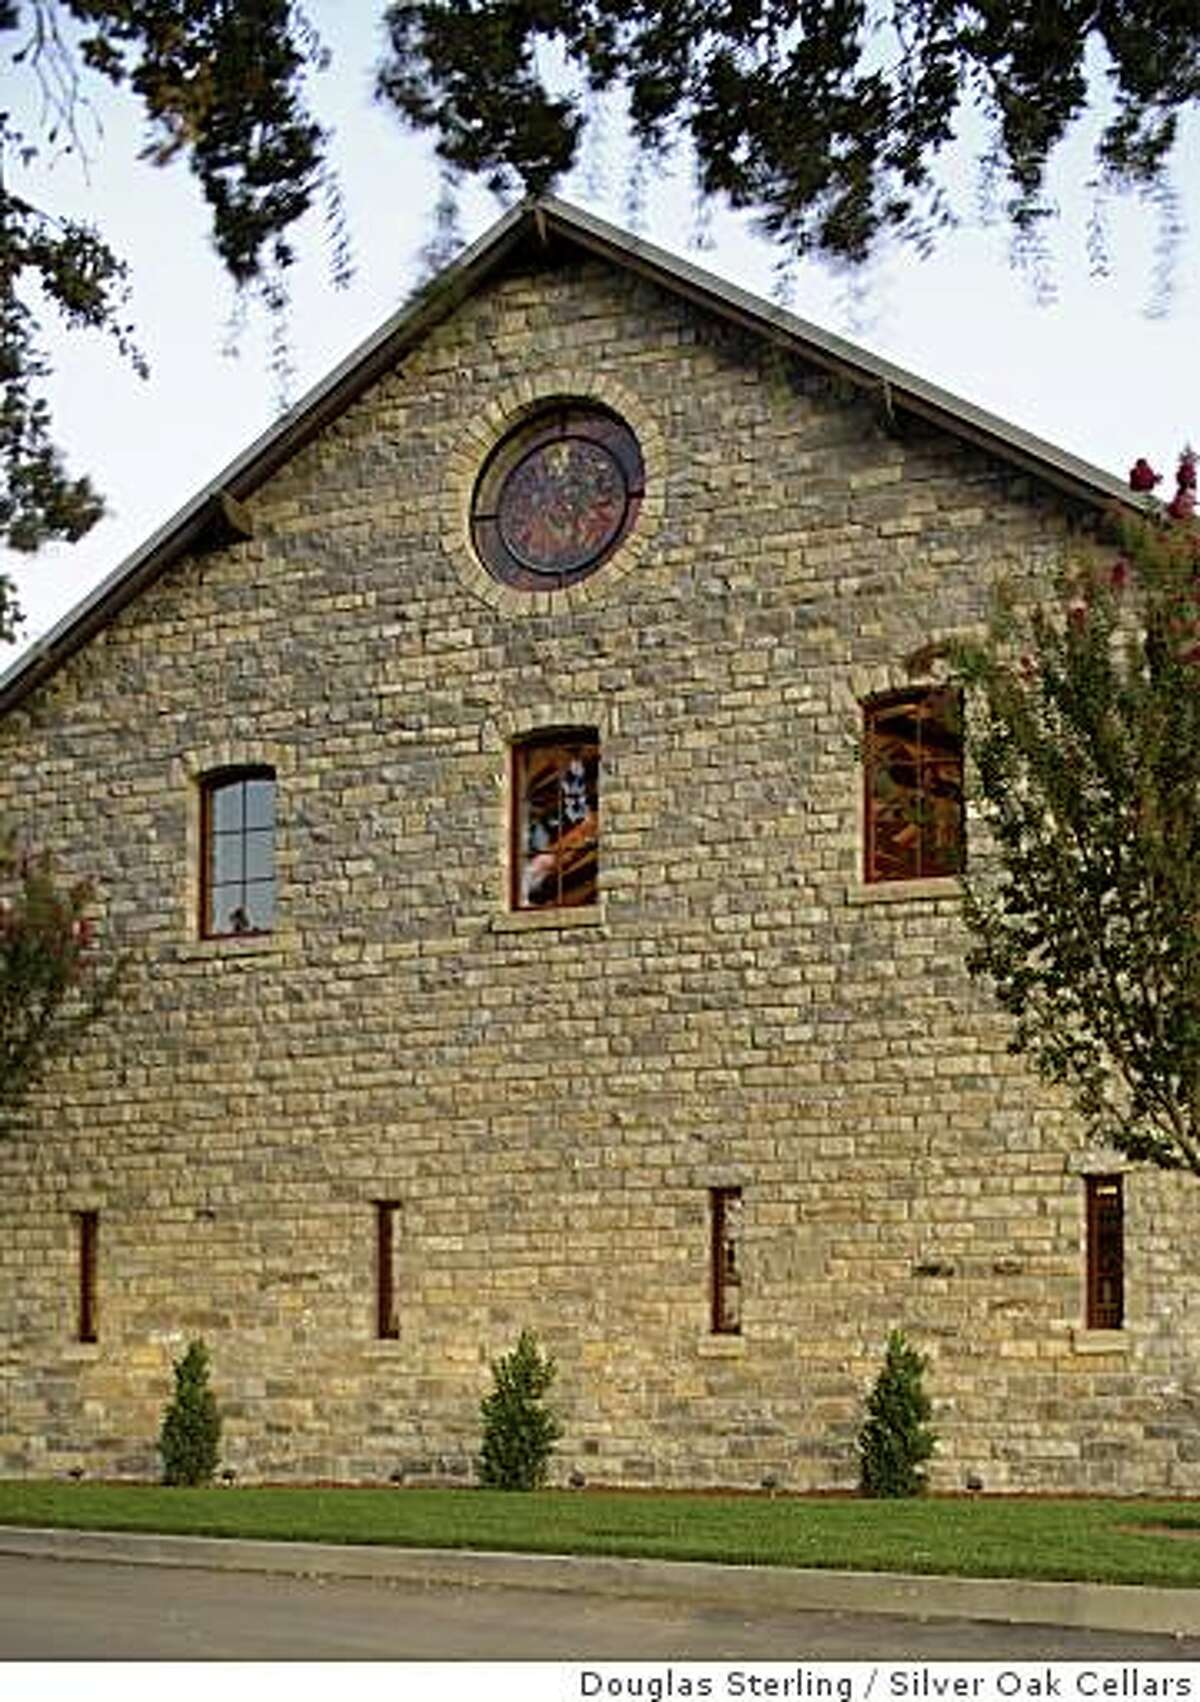 The limestone blocks covering the walls of the new Napa Valley home of Silver Oak Cellars came from an abandoned flour mill in Kansas.